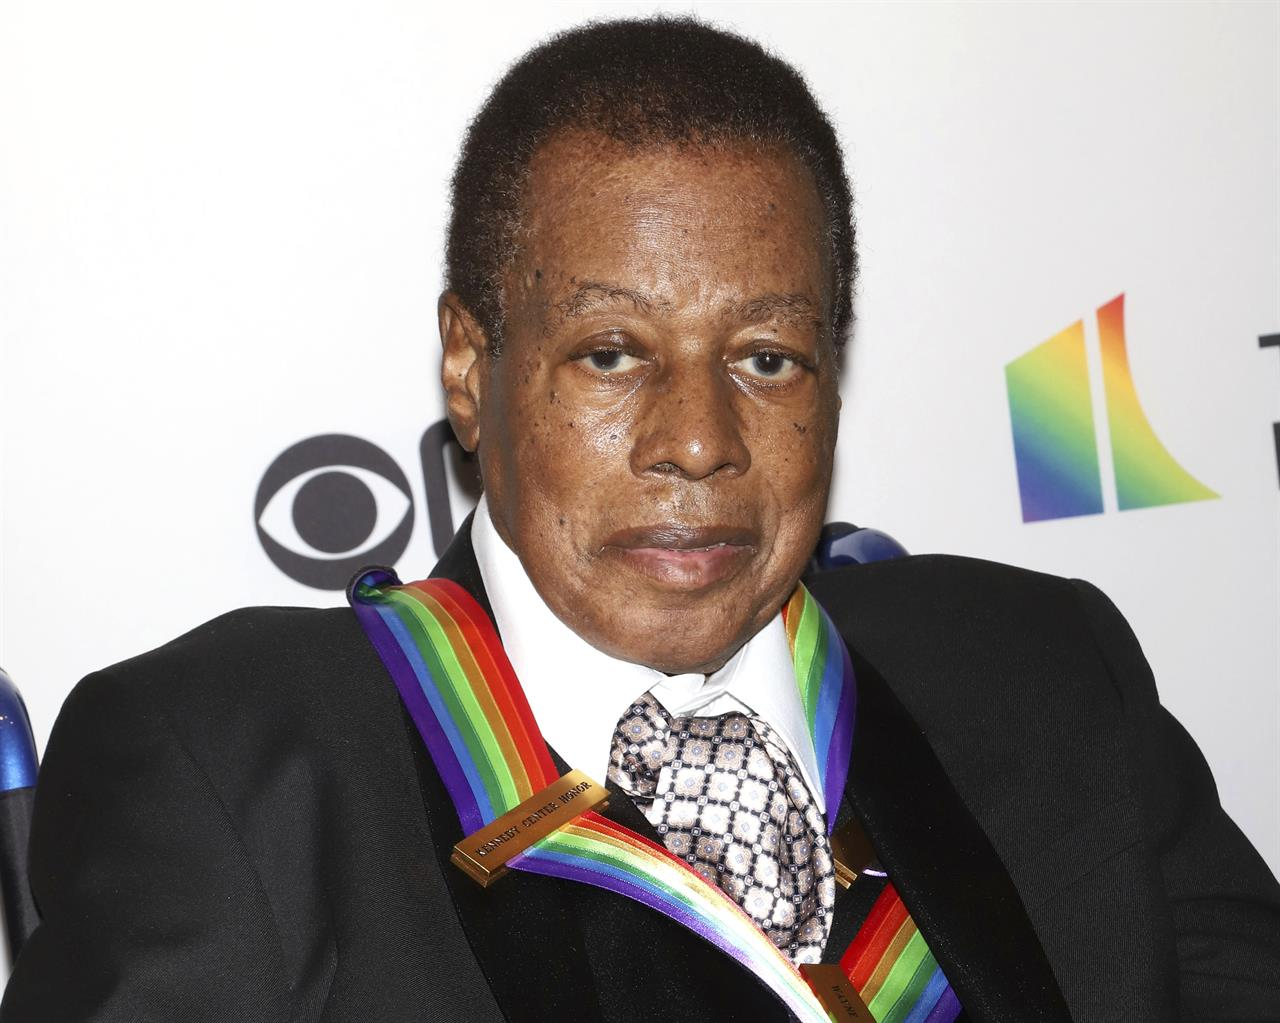 2018 Kennedy Center Honoree Wayne Shorter Attends The 41st Annual Honors At On Sunday Dec 2 In Washington